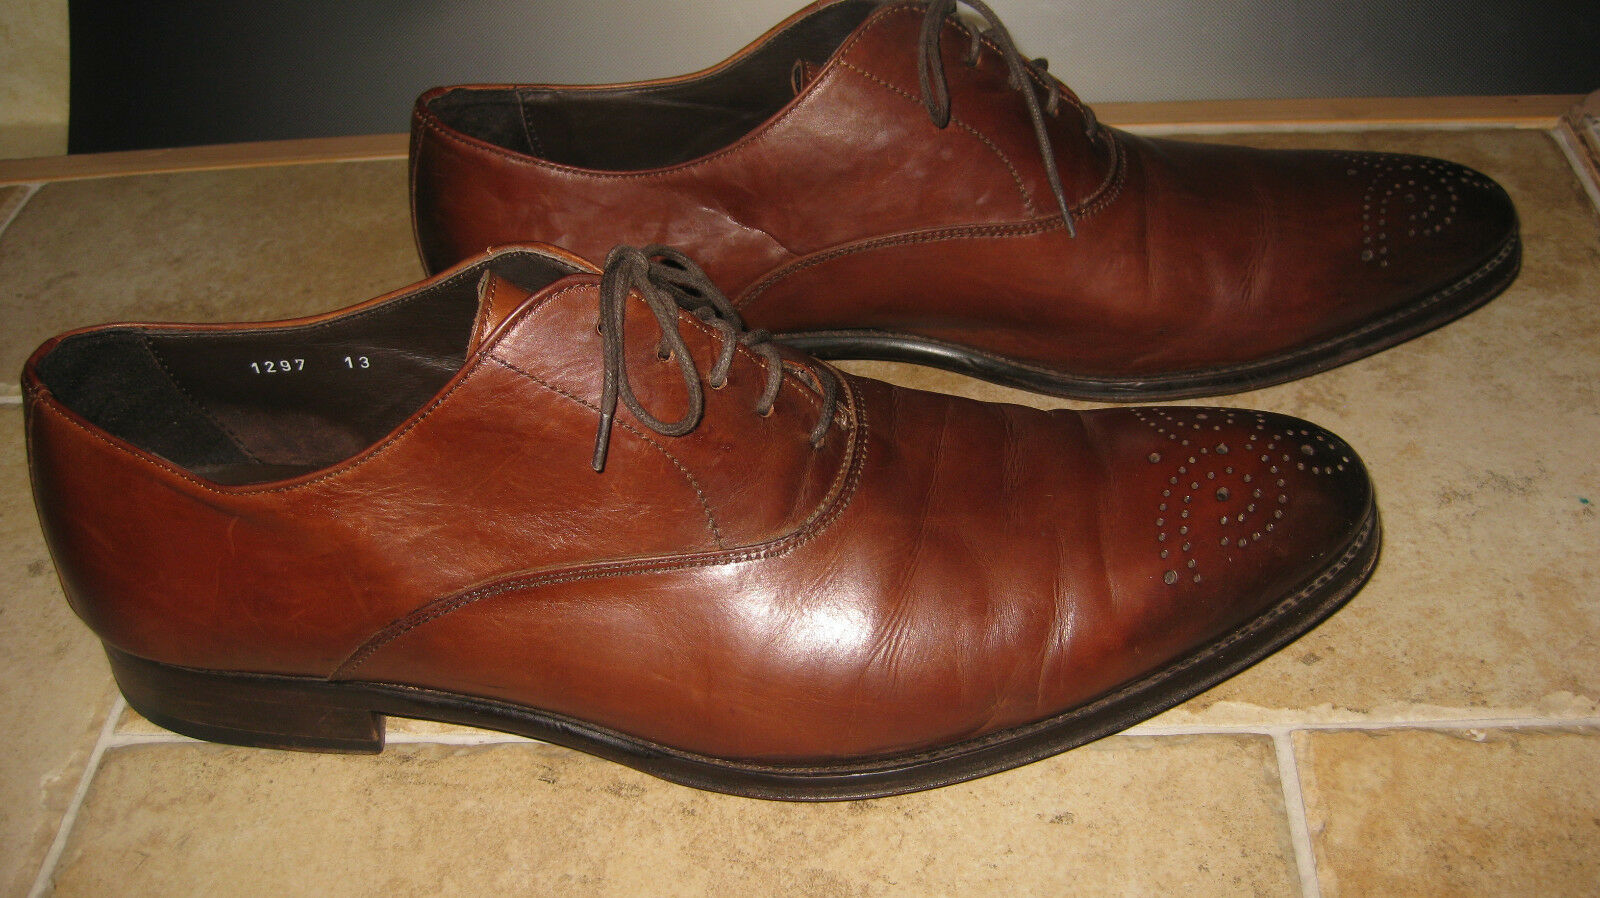 To Boot Schuhes New York  Uomo Schuhes Boot Made In  Größe 13 9cca25